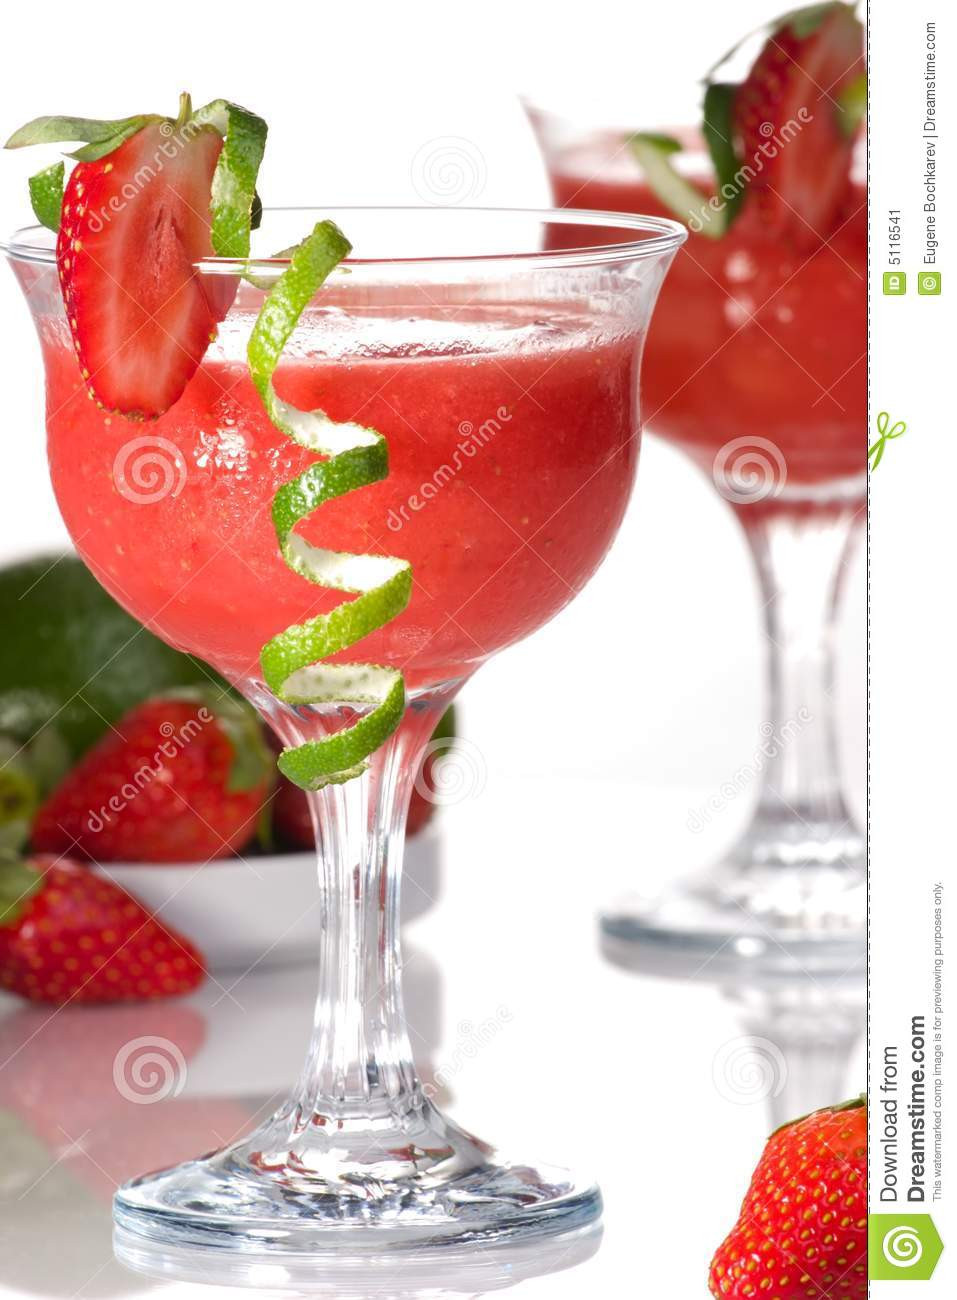 Strawberry Rum Drinks  Strawberry Daiquiri Most Popular Cocktails Serie Stock